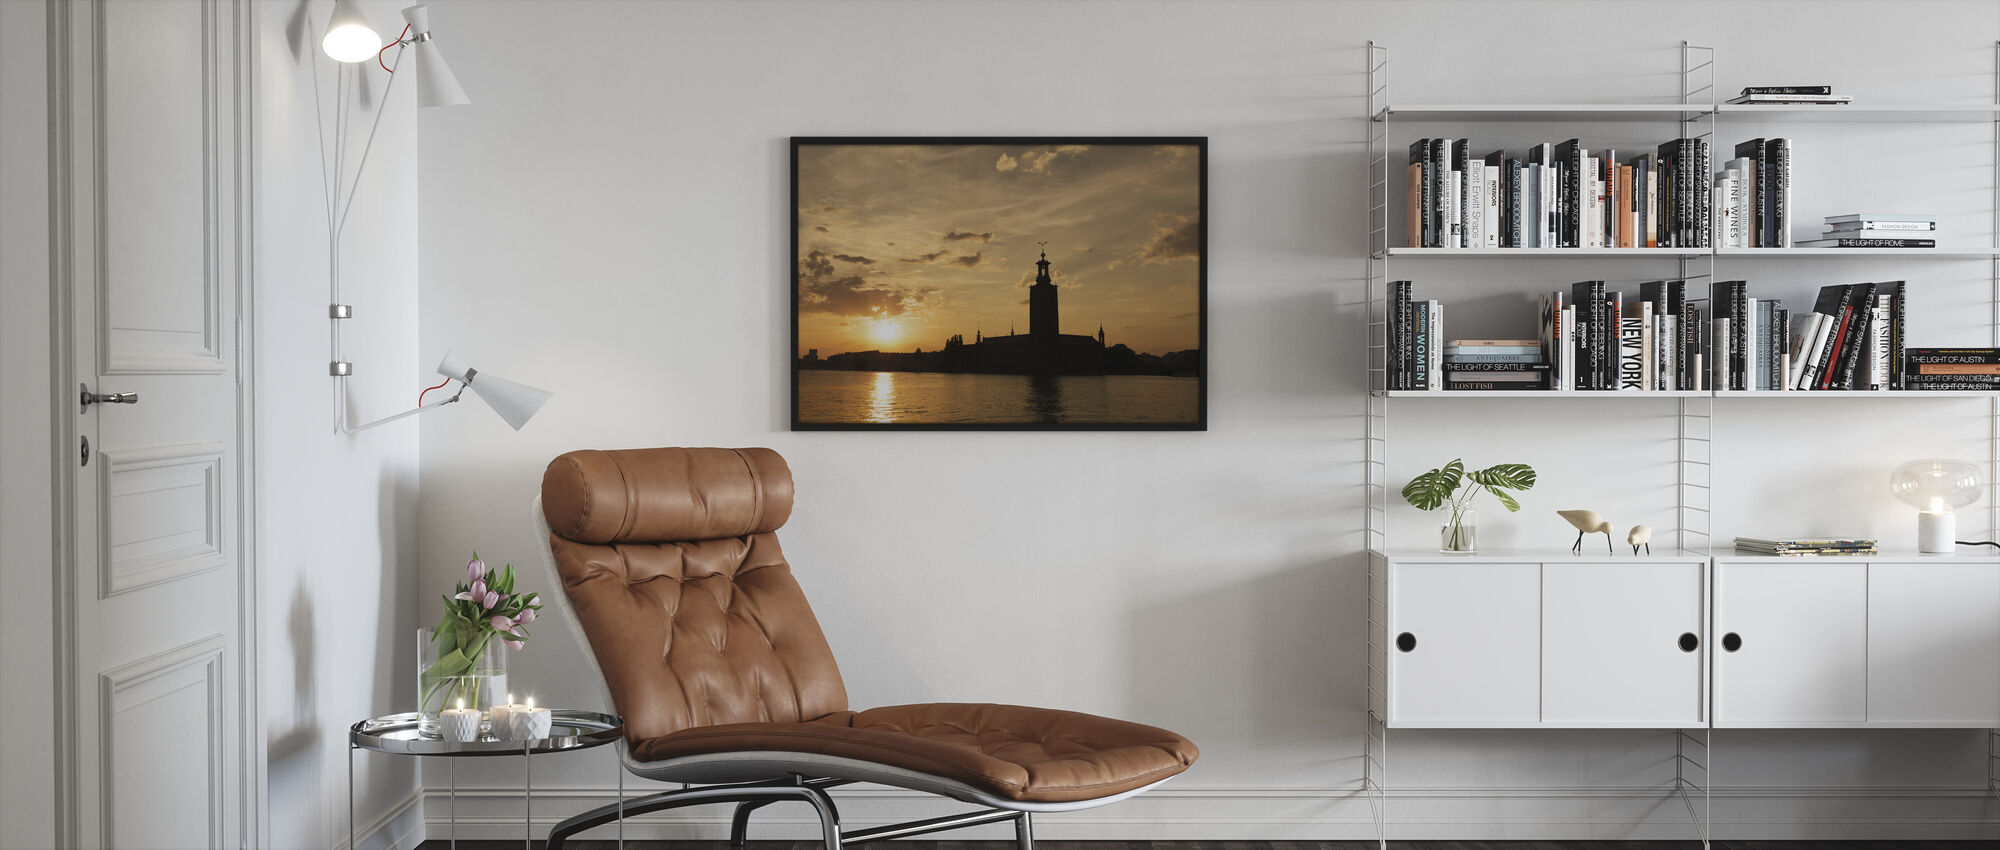 Stockholm City Hall in Silhouette - Framed print - Living Room